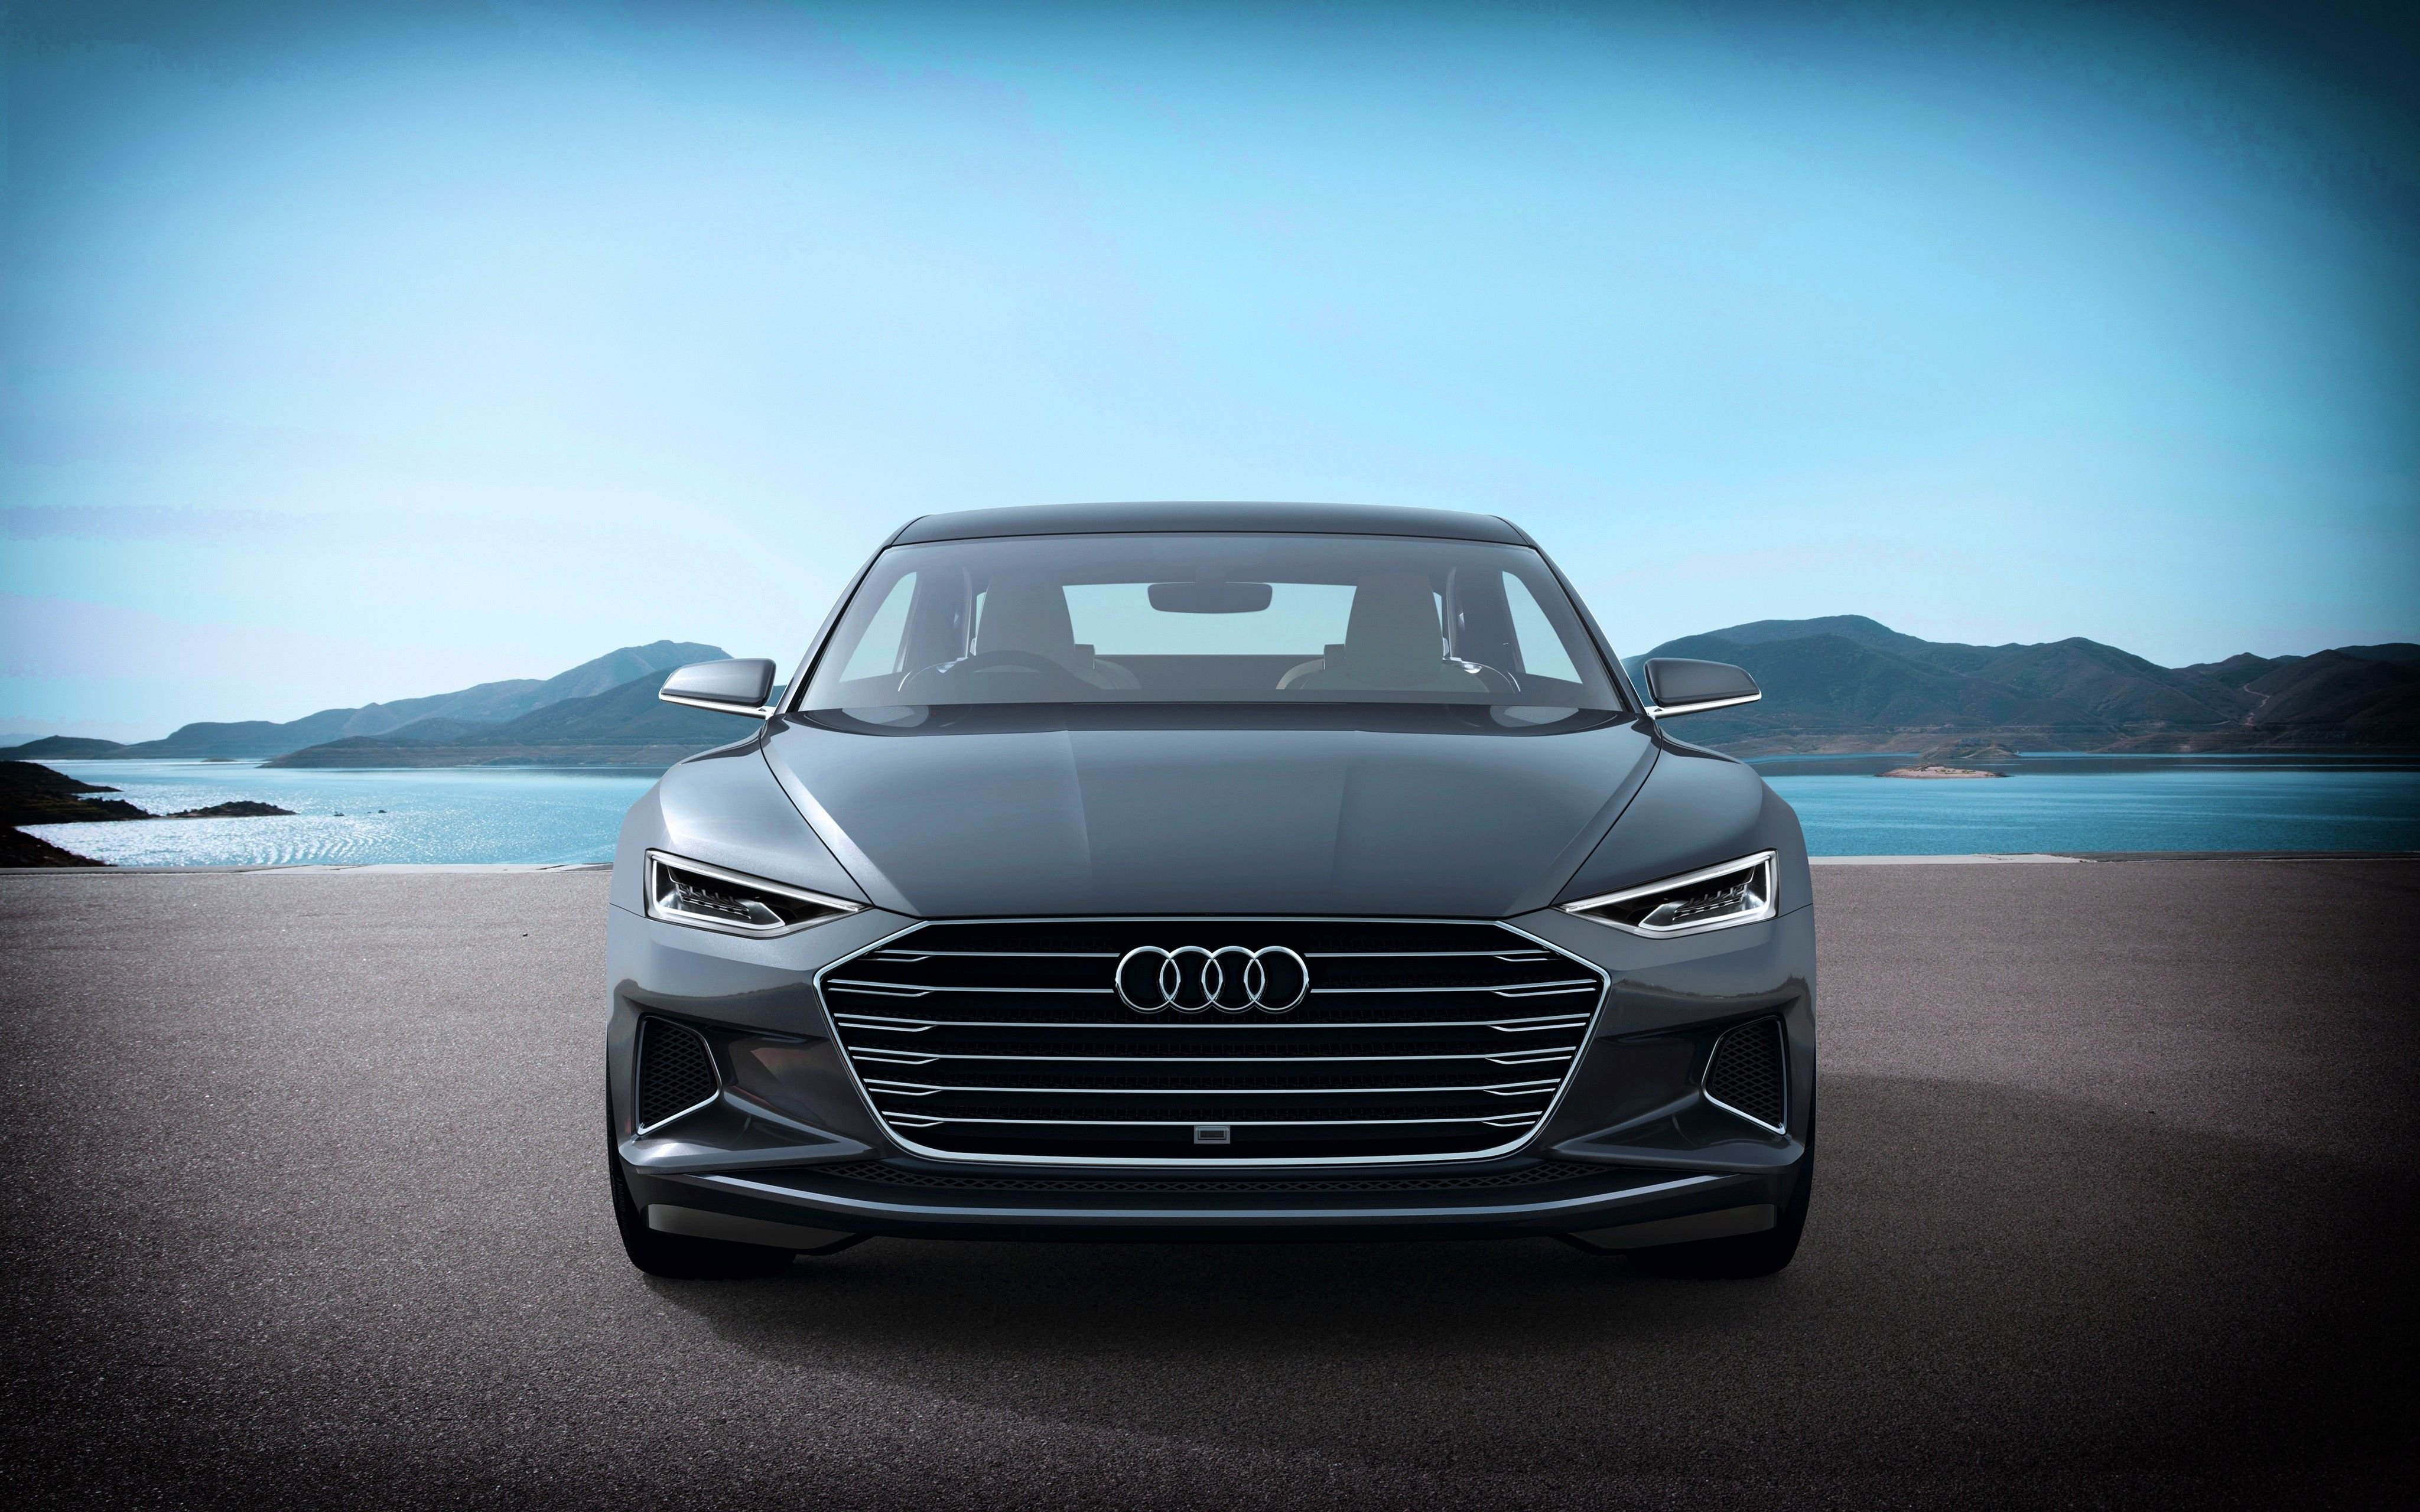 Latest Audi A7 Wallpaper Hd Free Download Image Illinois Liver Free Download